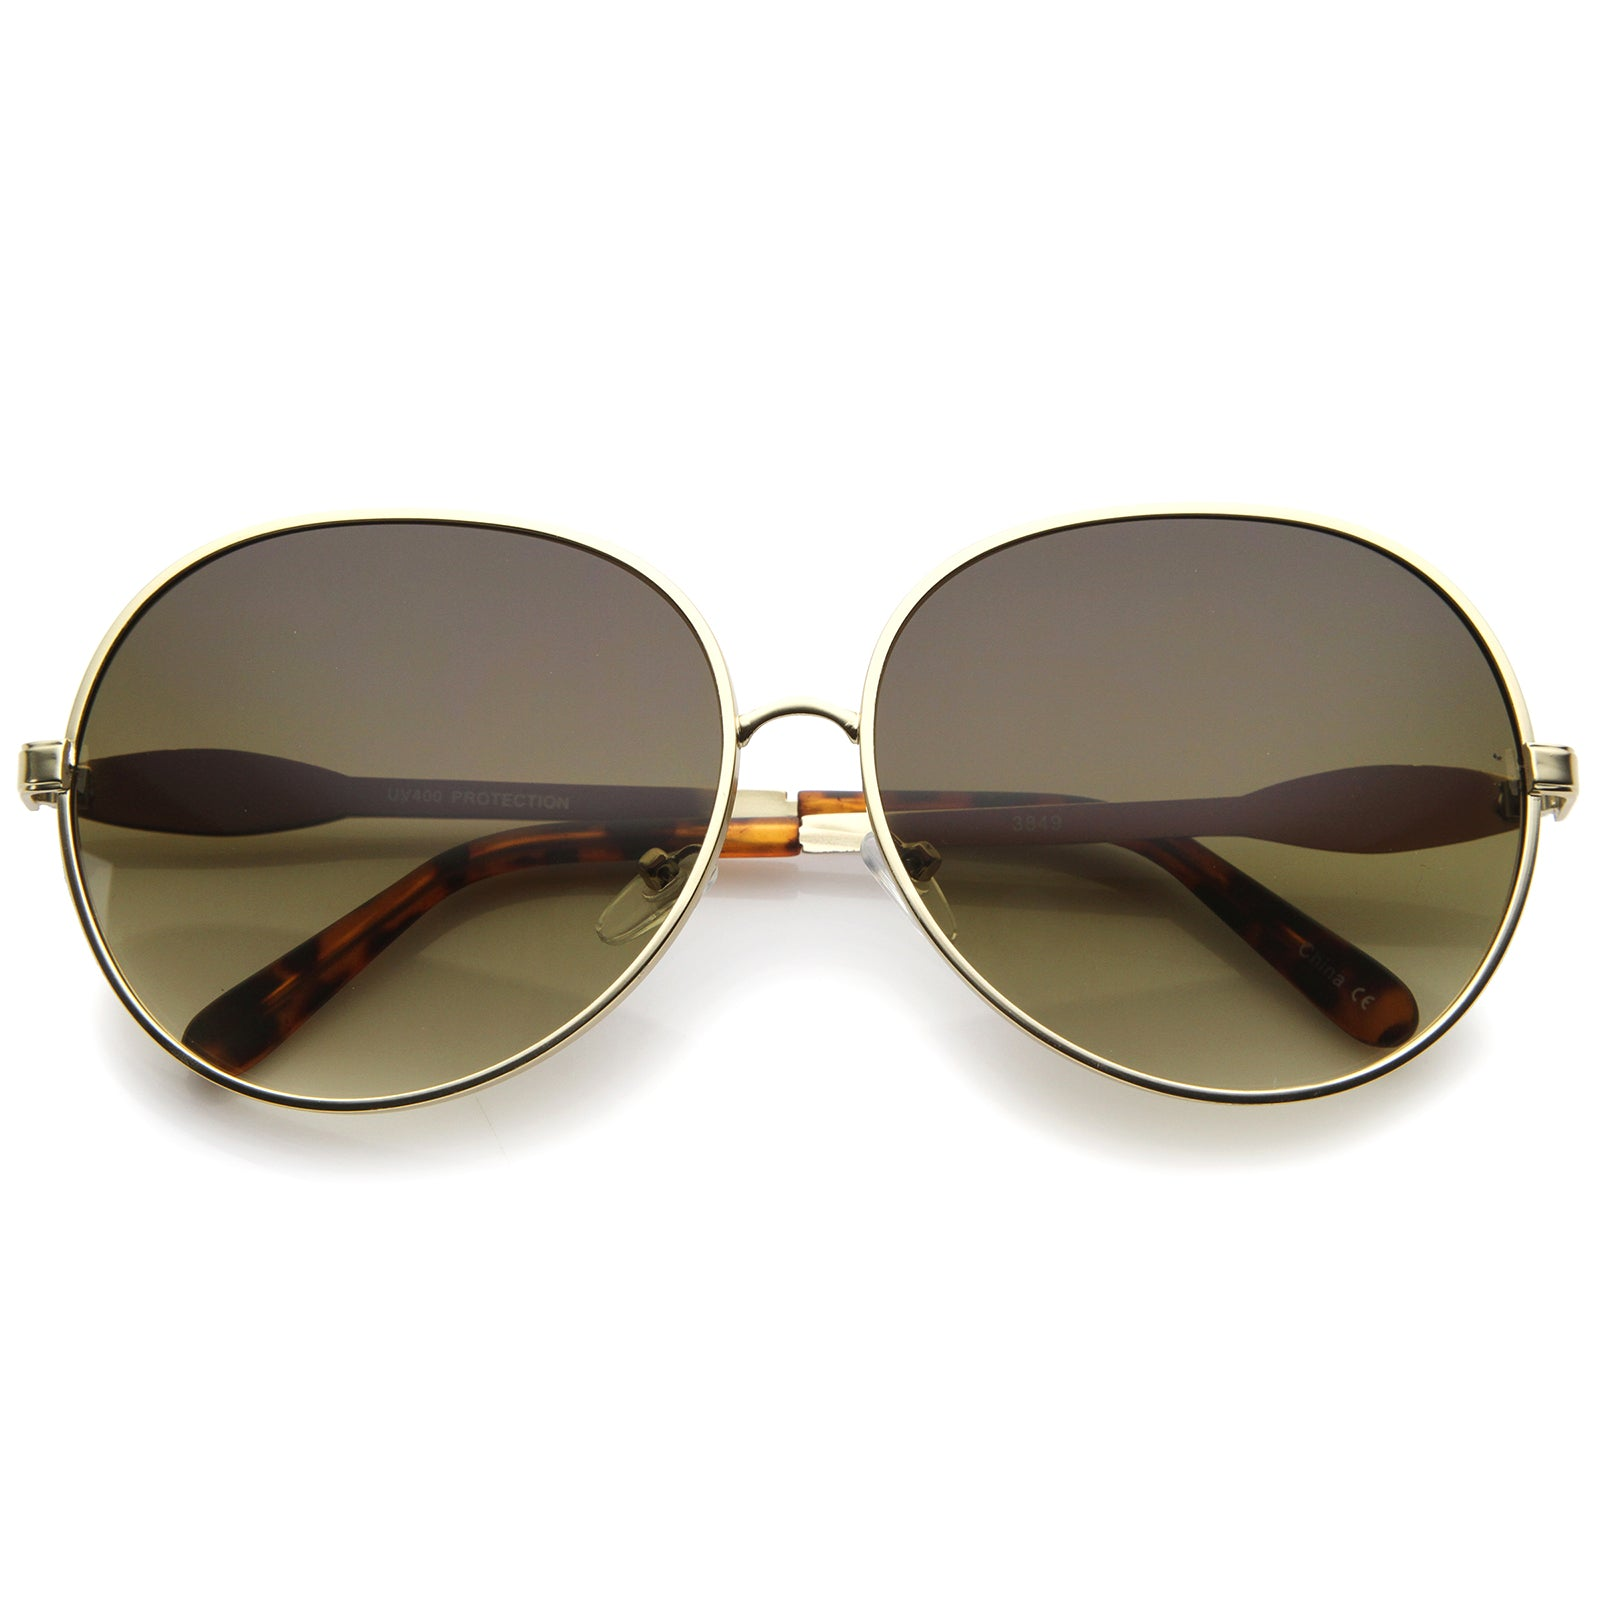 Womens Glam Full Metal Frame Oversized Round Sunglasses 63mm - sunglass.la - 13